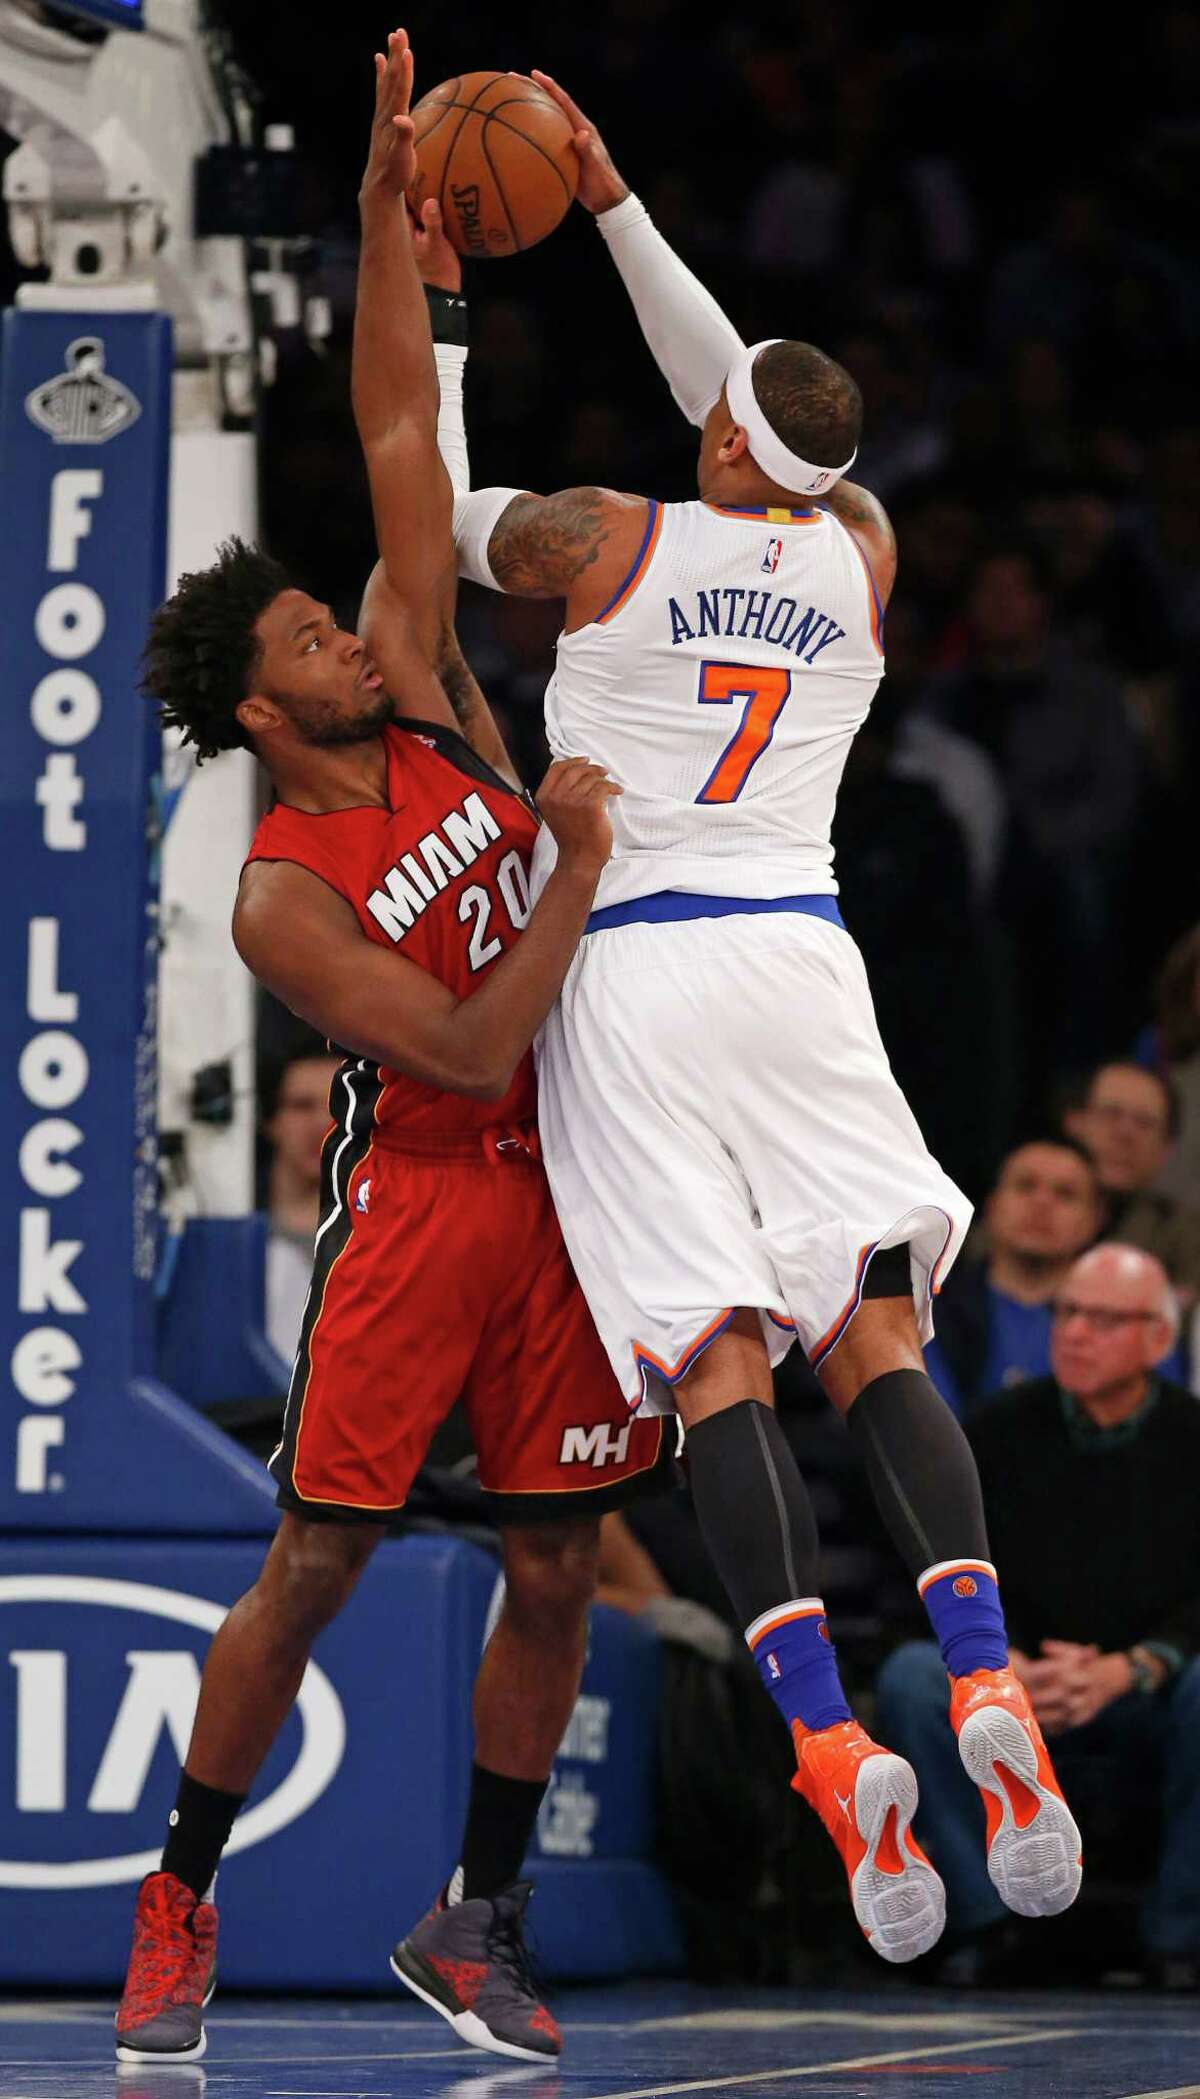 Miami Heat forward Justise Winslow (20) defends New York Knicks forward Carmelo Anthony (7) in the first half of an NBA basketball game at Madison Square Garden in New York, Sunday, Feb. 28, 2016. (AP Photo/Kathy Willens) ORG XMIT: MSG106